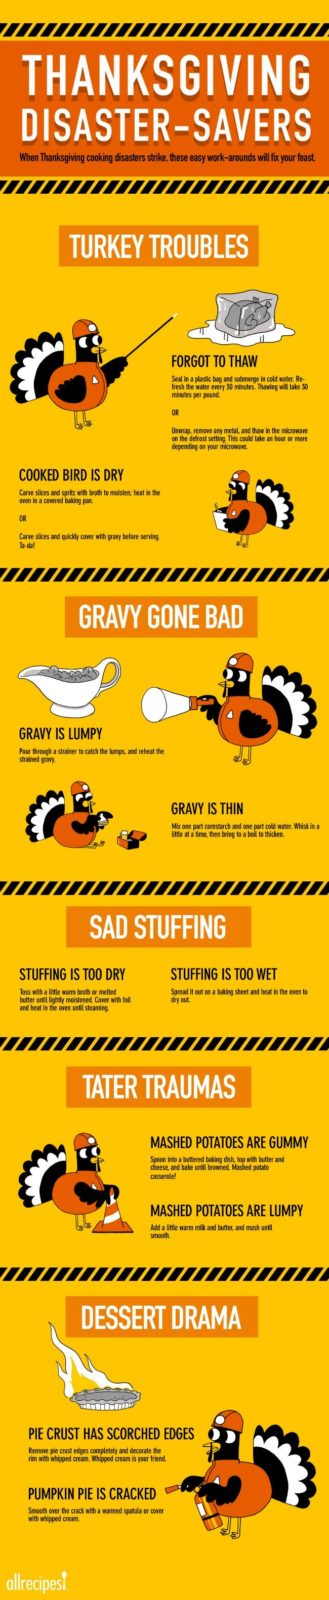 thanksgiving-disaster-savers-infographic-by-allrecipes